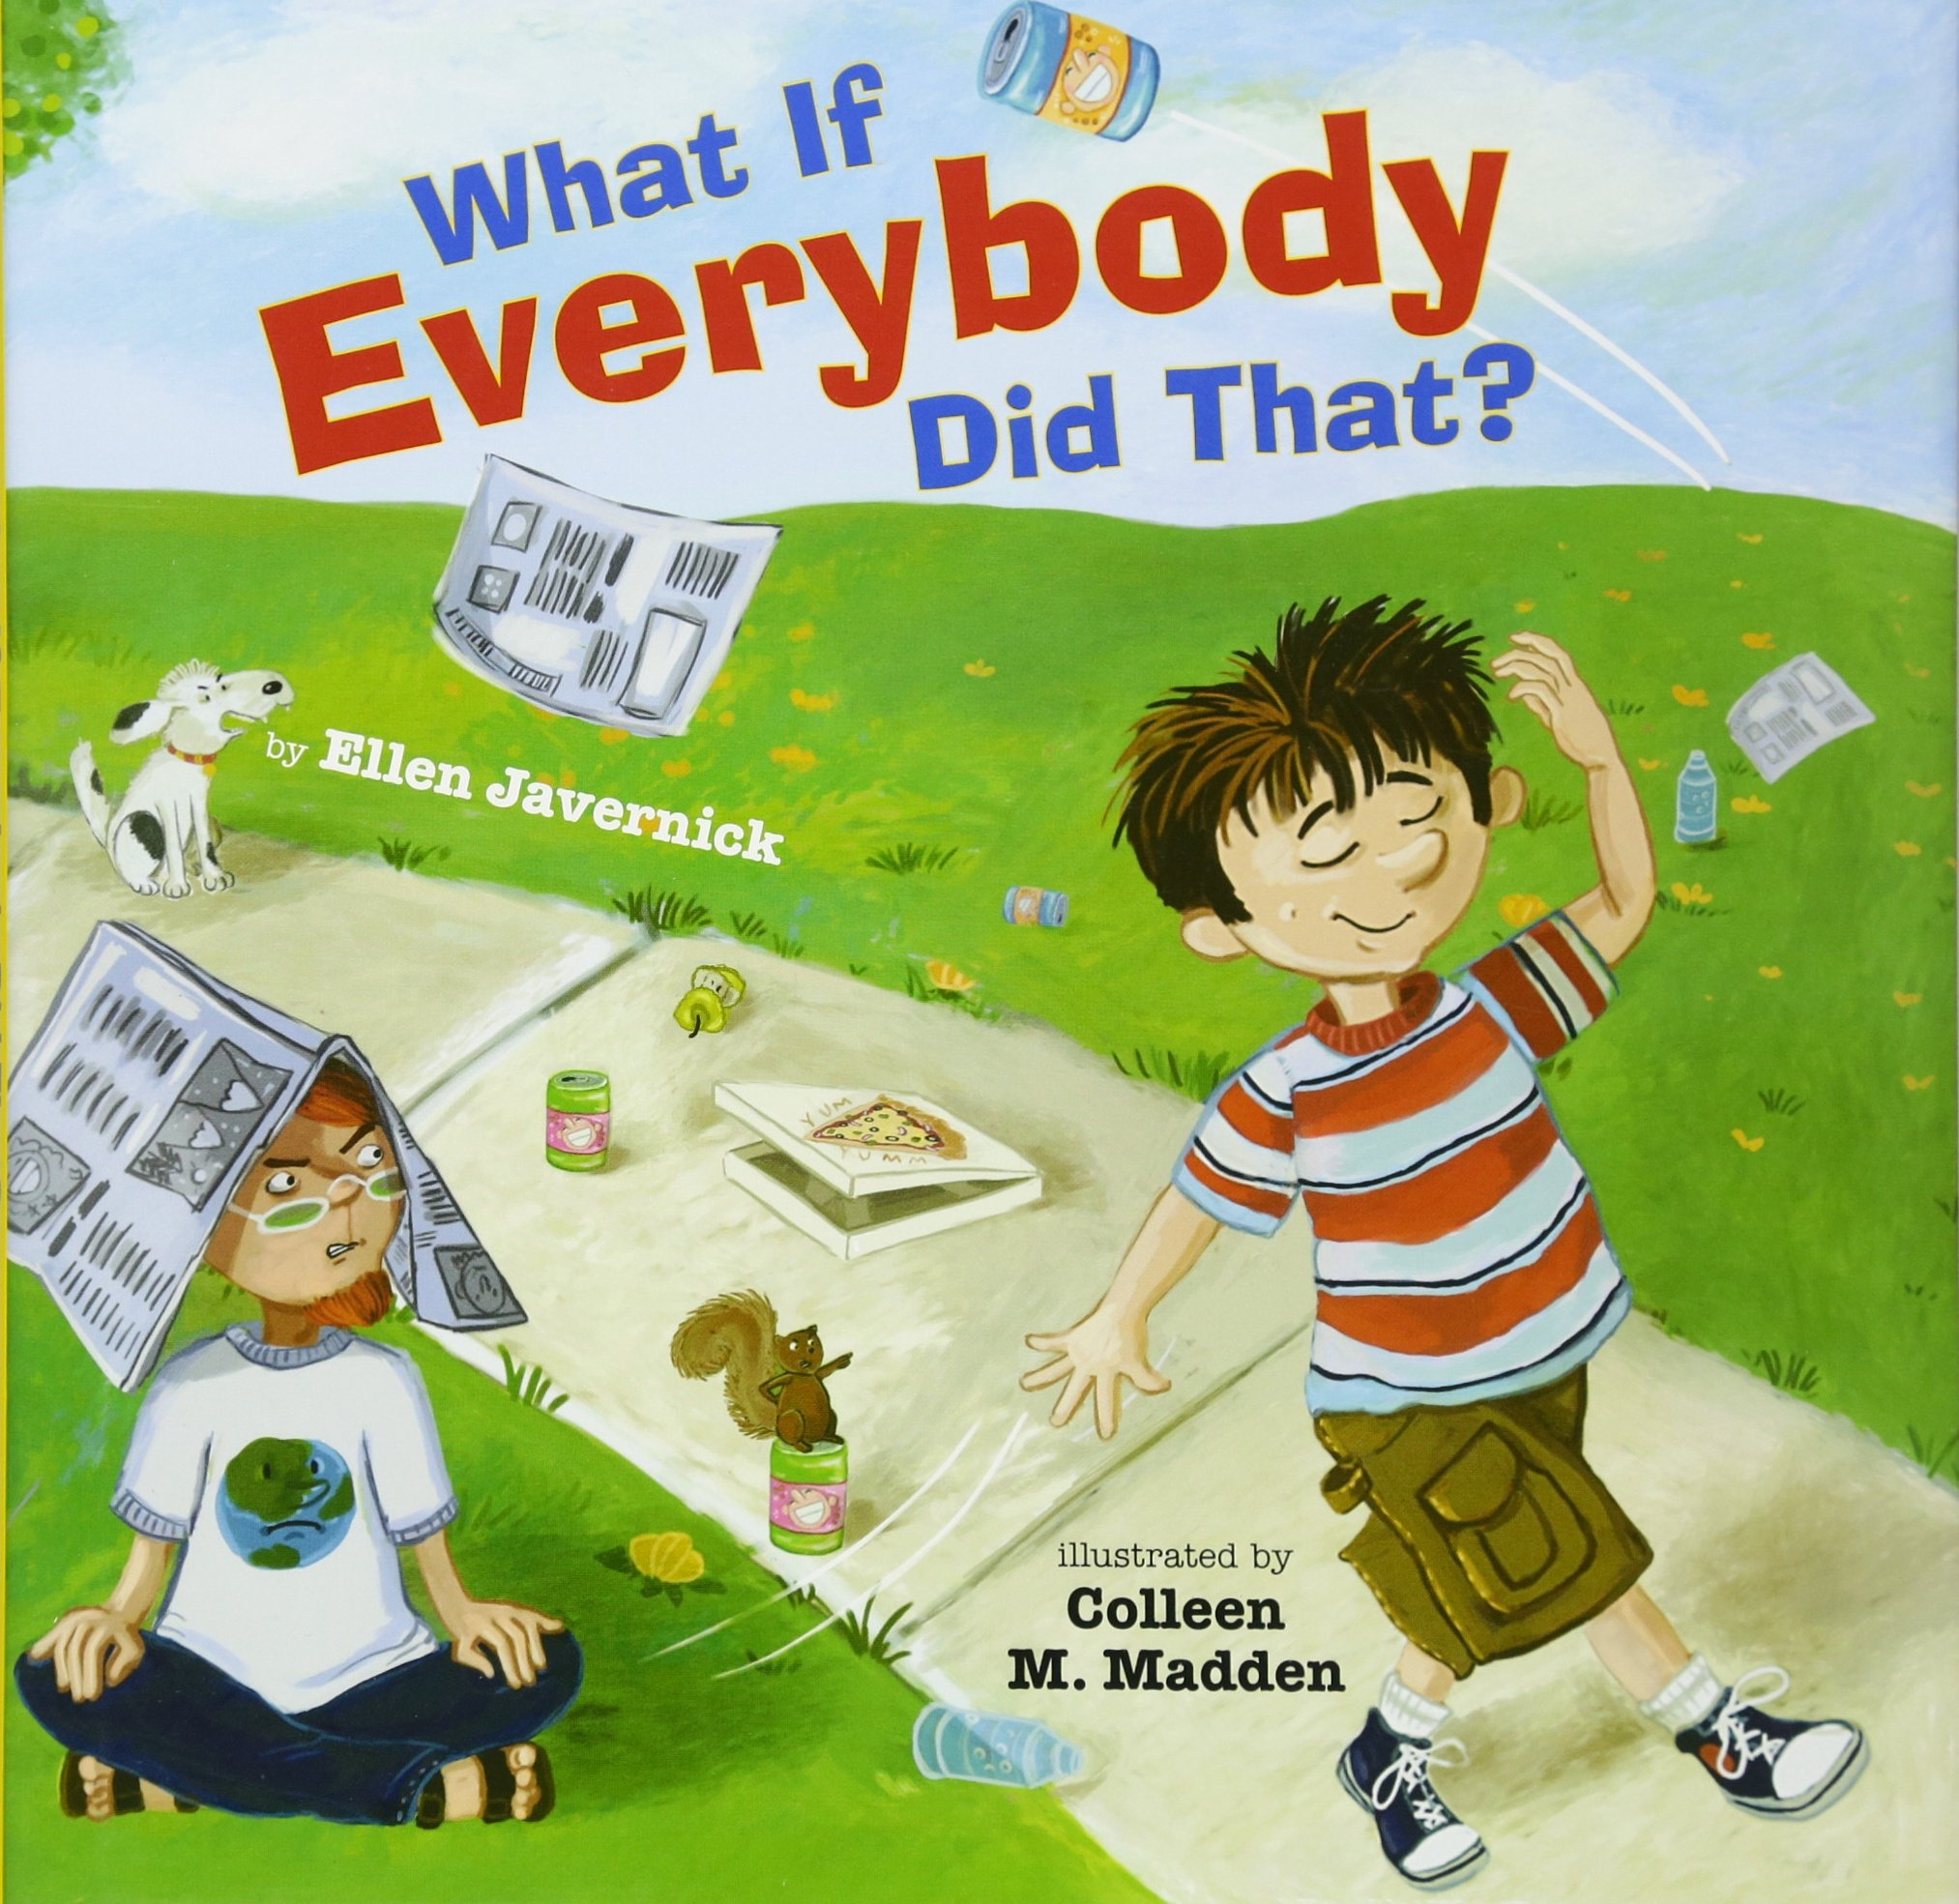 What If Everybody Did That?: Amazon.es: Ellen Javernick: Libros en idiomas extranjeros